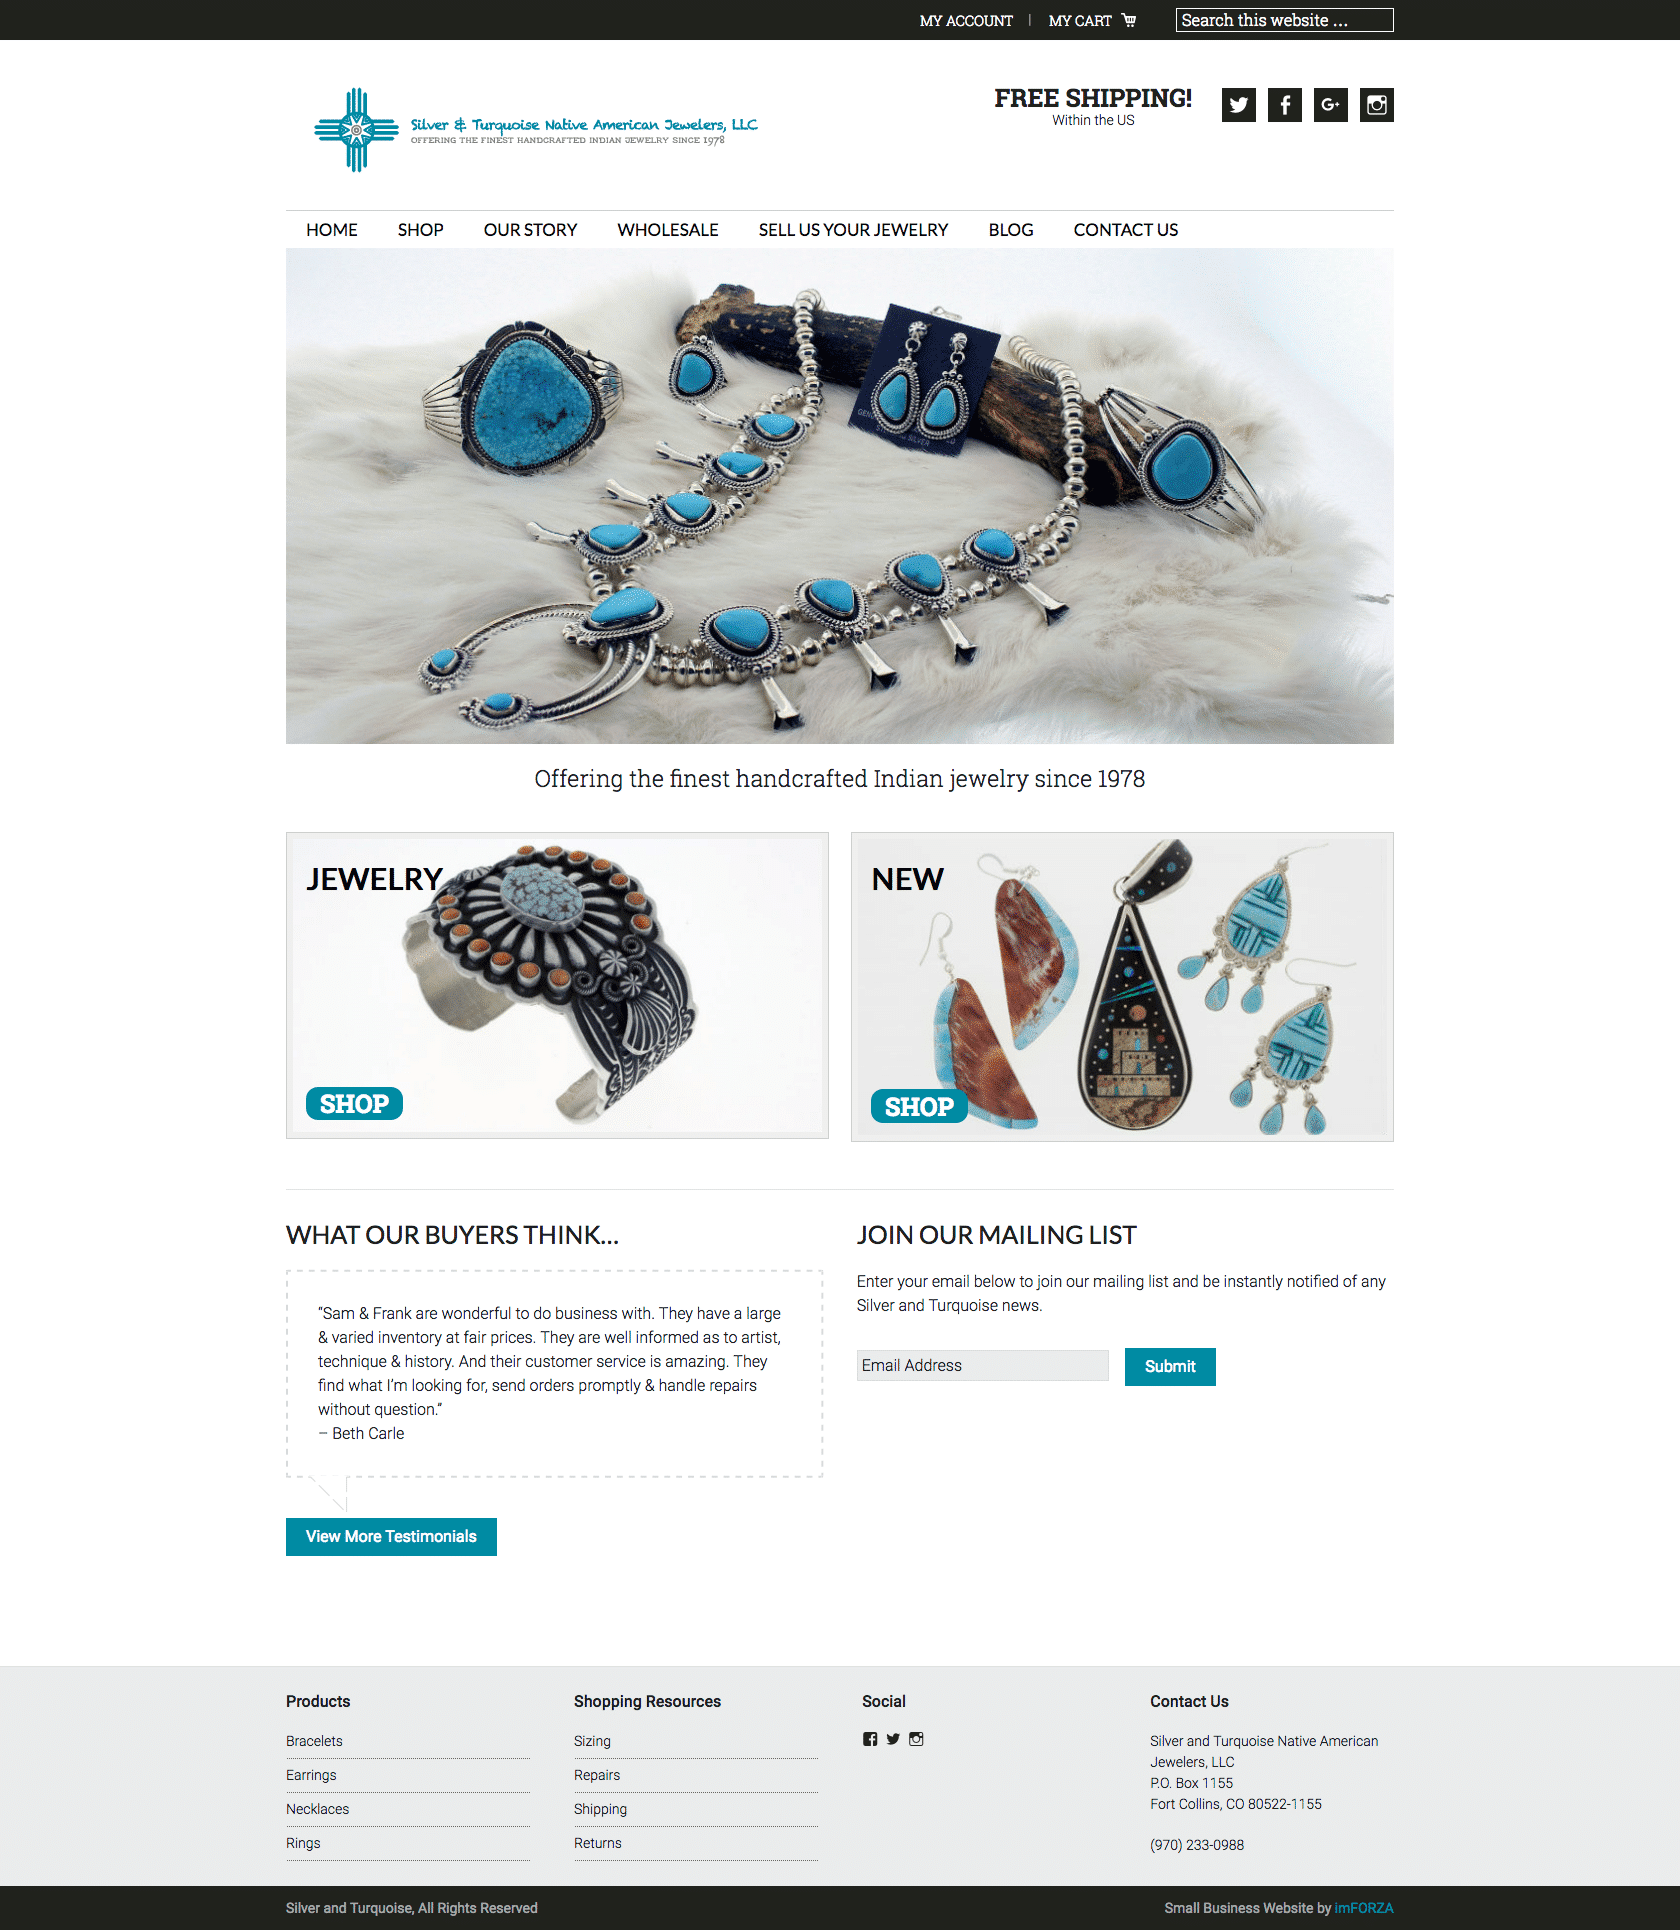 Silver & Turquoise Jewelry - Template eCommerce Website by imFORZA